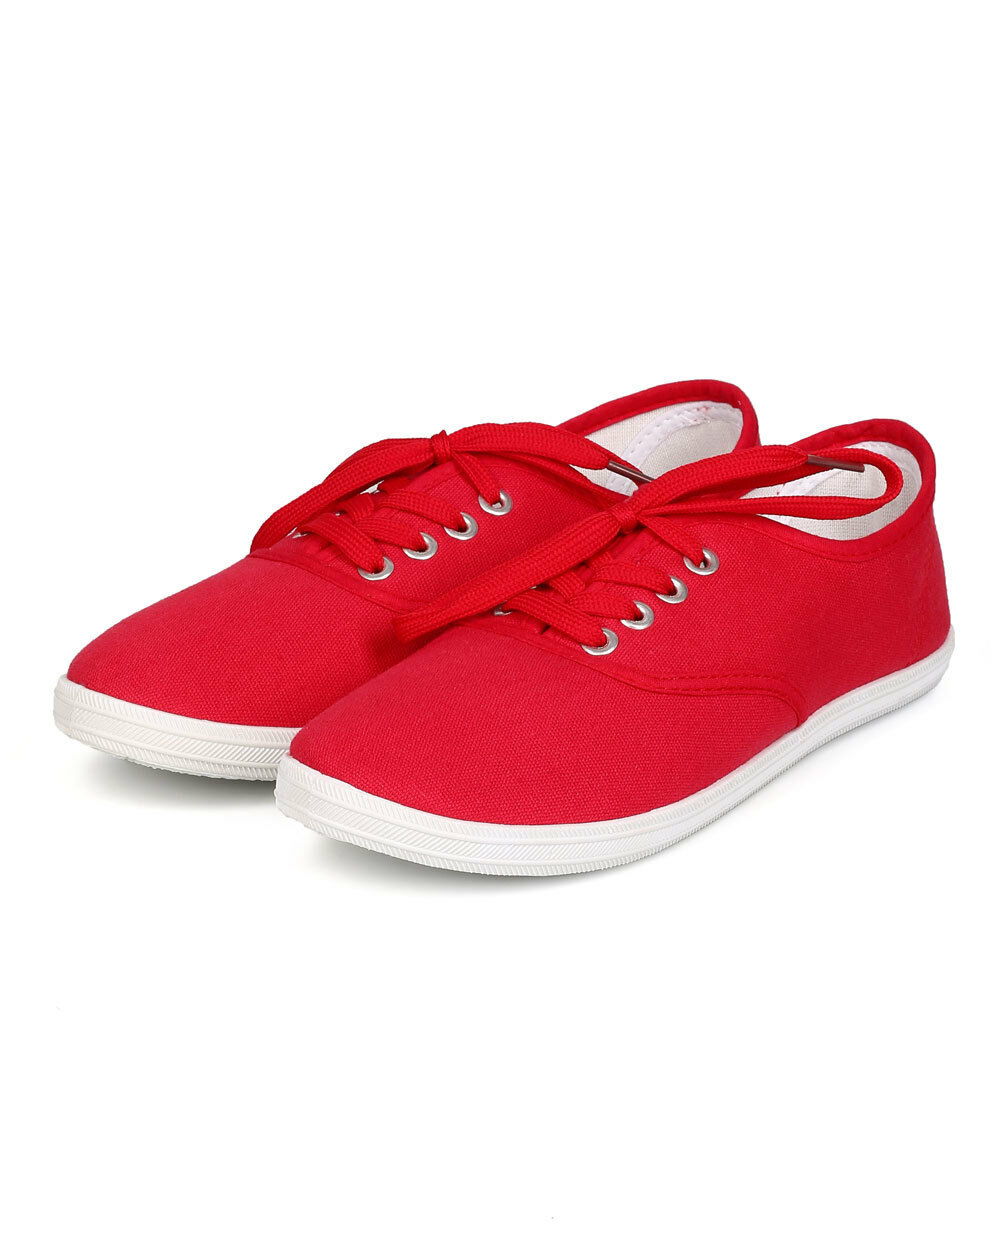 New Women Refresh Lemon Canvas Up Round Toe Classic Lace Up Canvas Sneaker Size 637b36